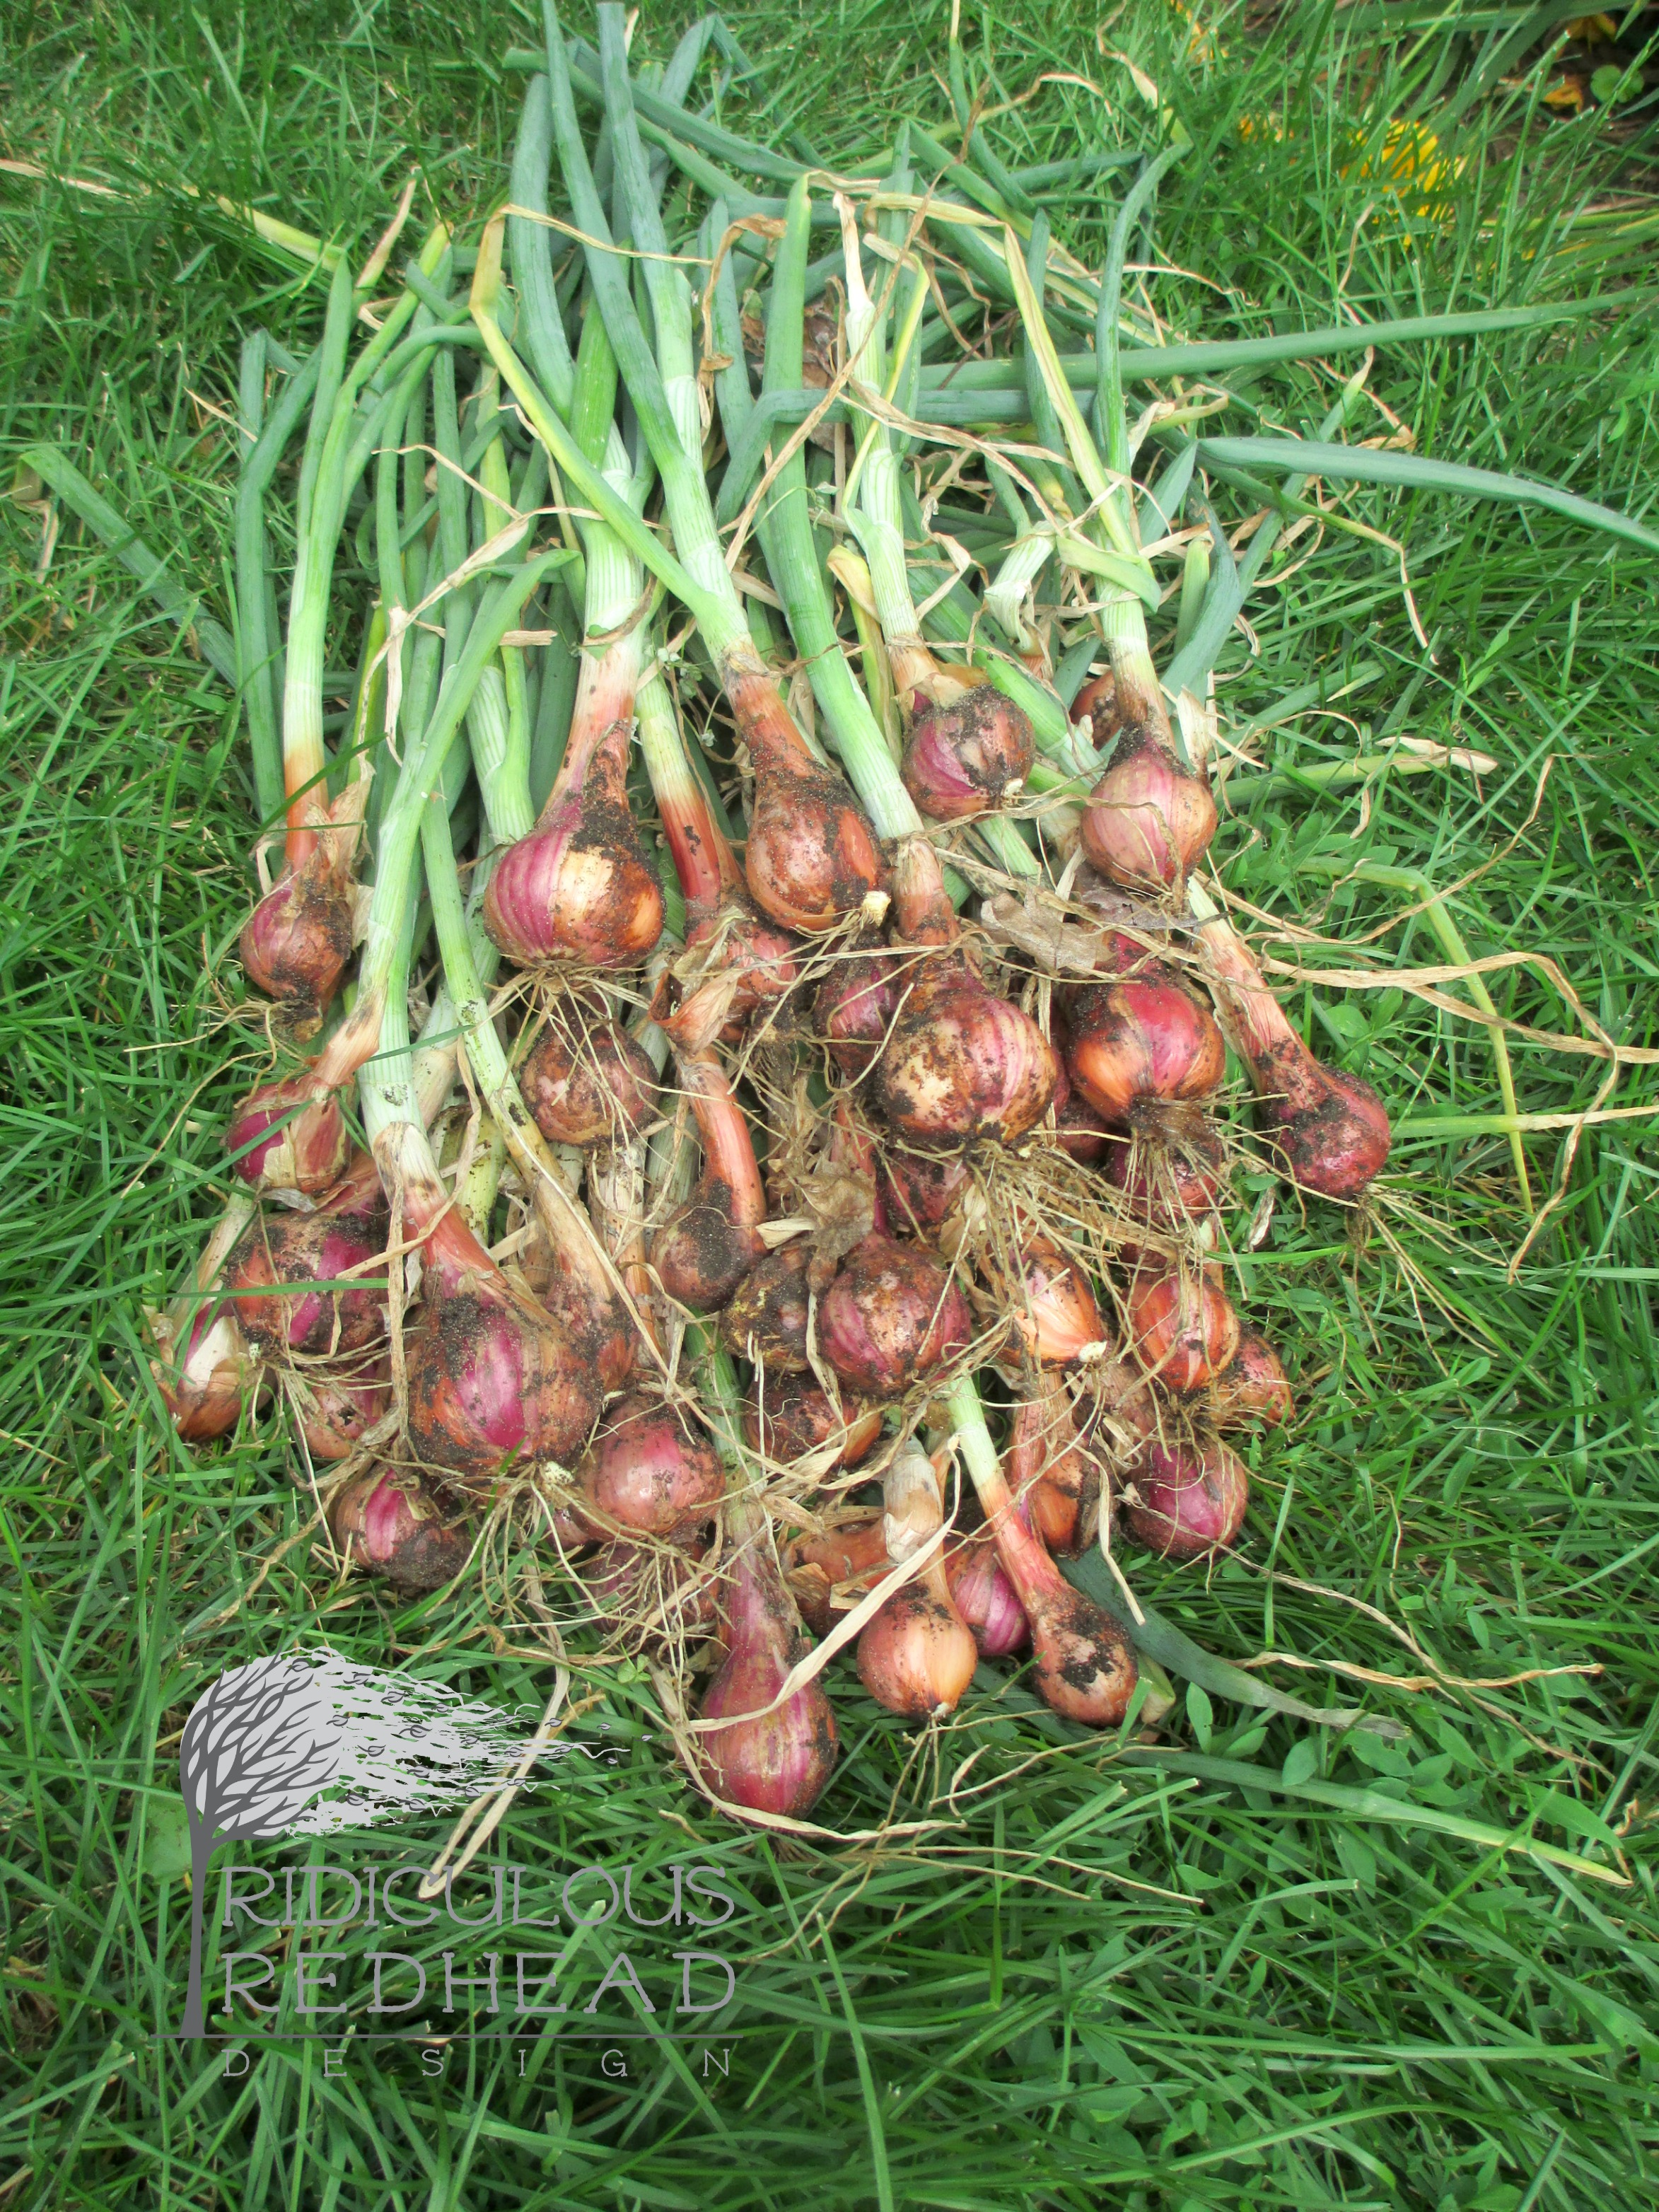 Ridiculous redhead shallots 6.23